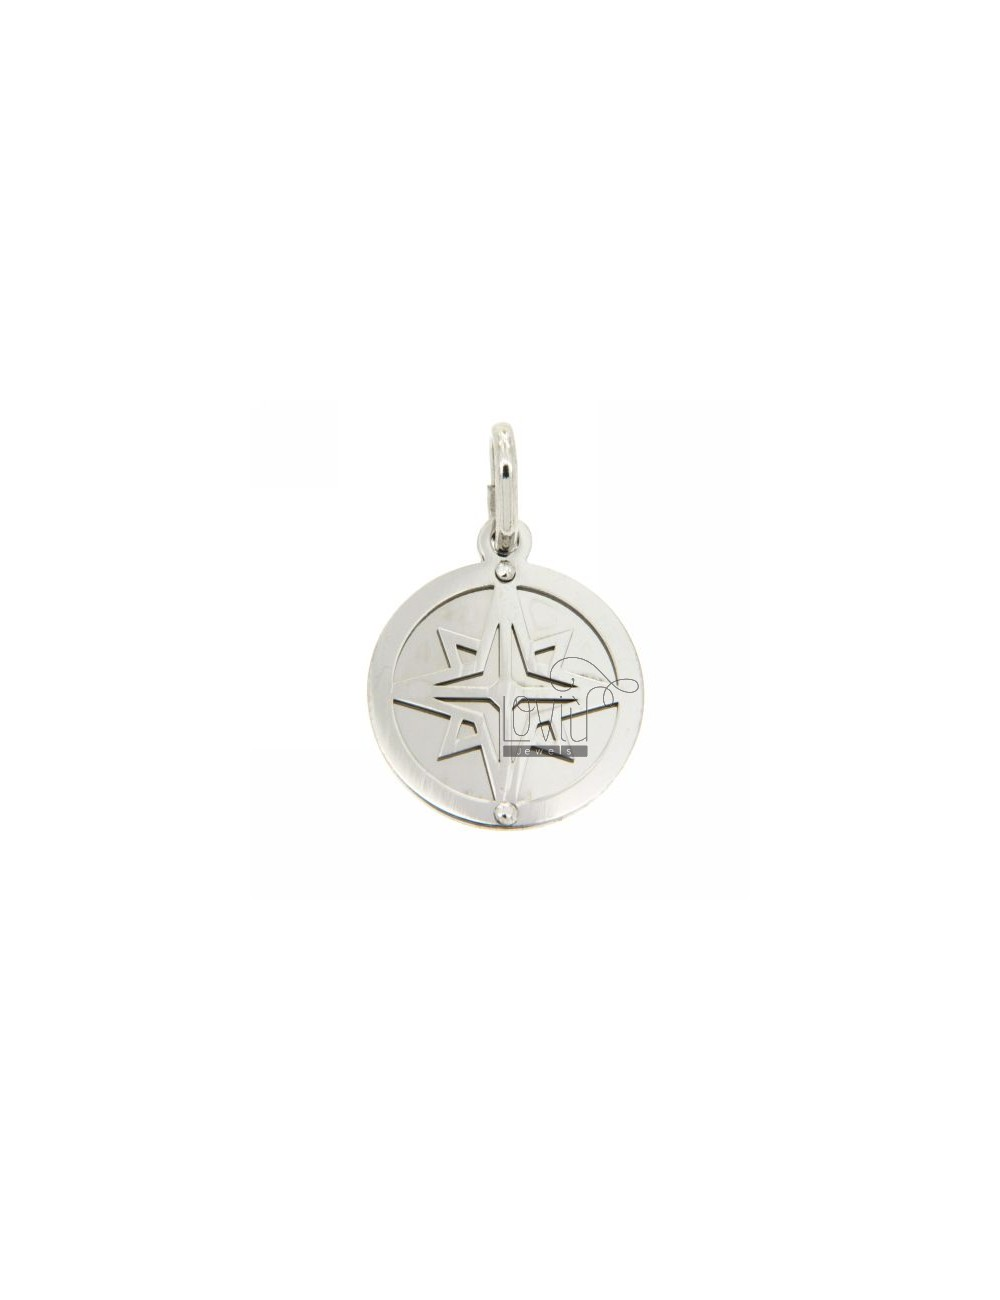 ROUND PENDANT WITH WIND ROSE RHODIUM SILVER 925